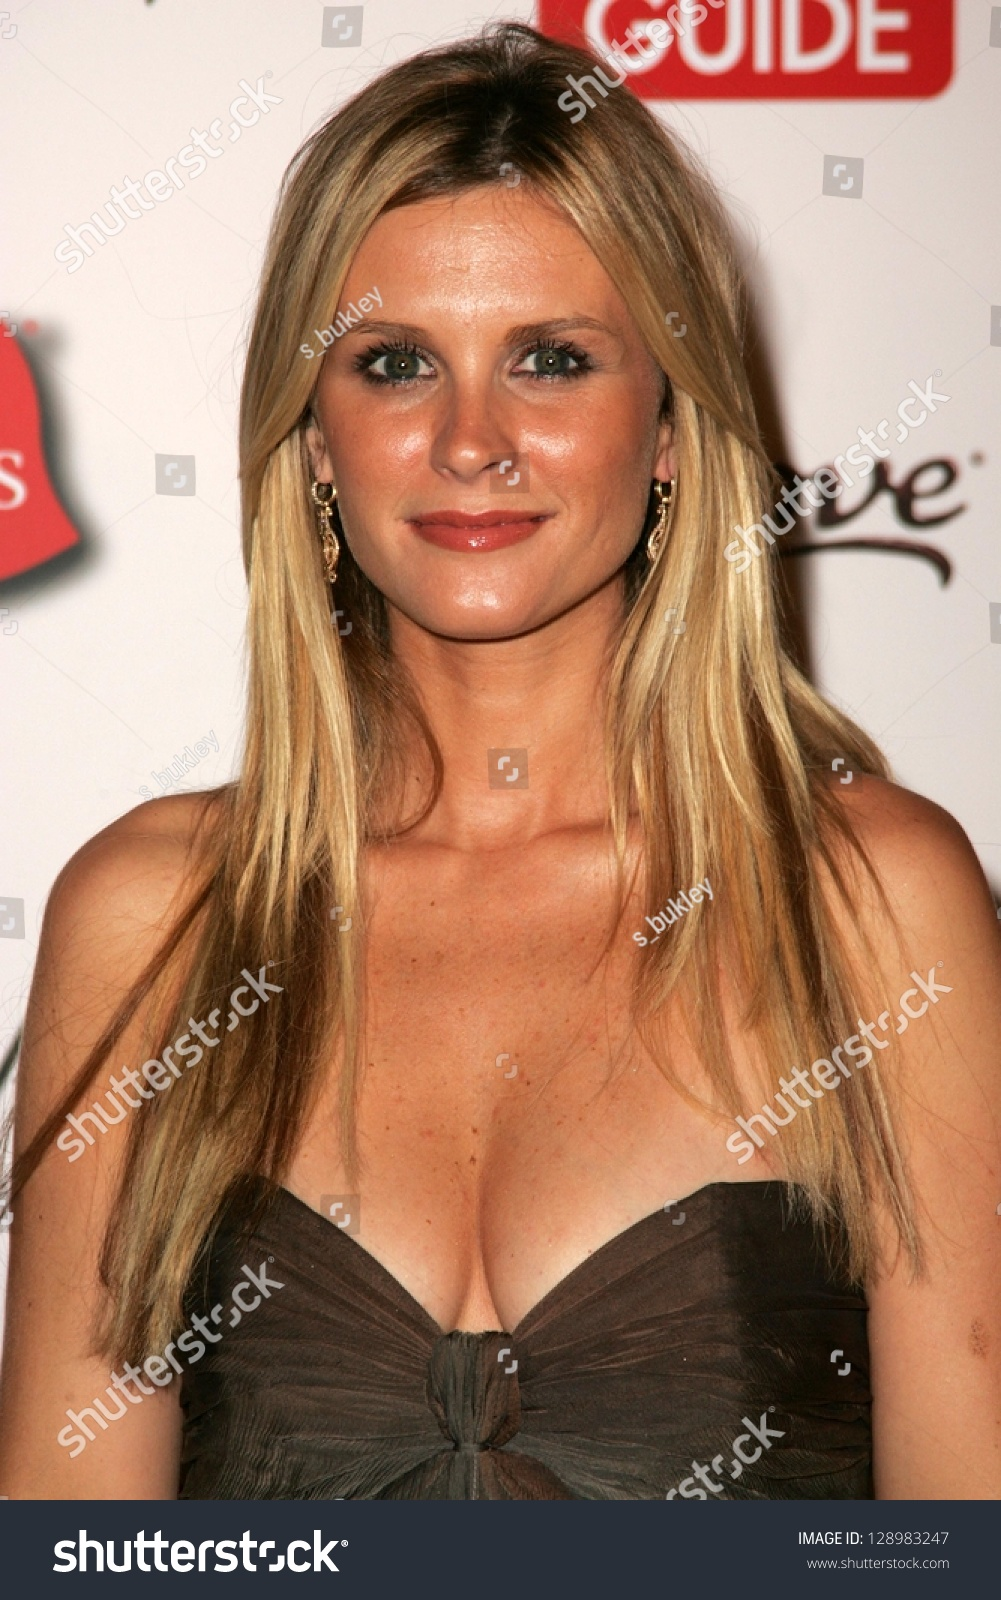 Bonnie Somerville nude (97 photos), hot Tits, YouTube, braless 2018